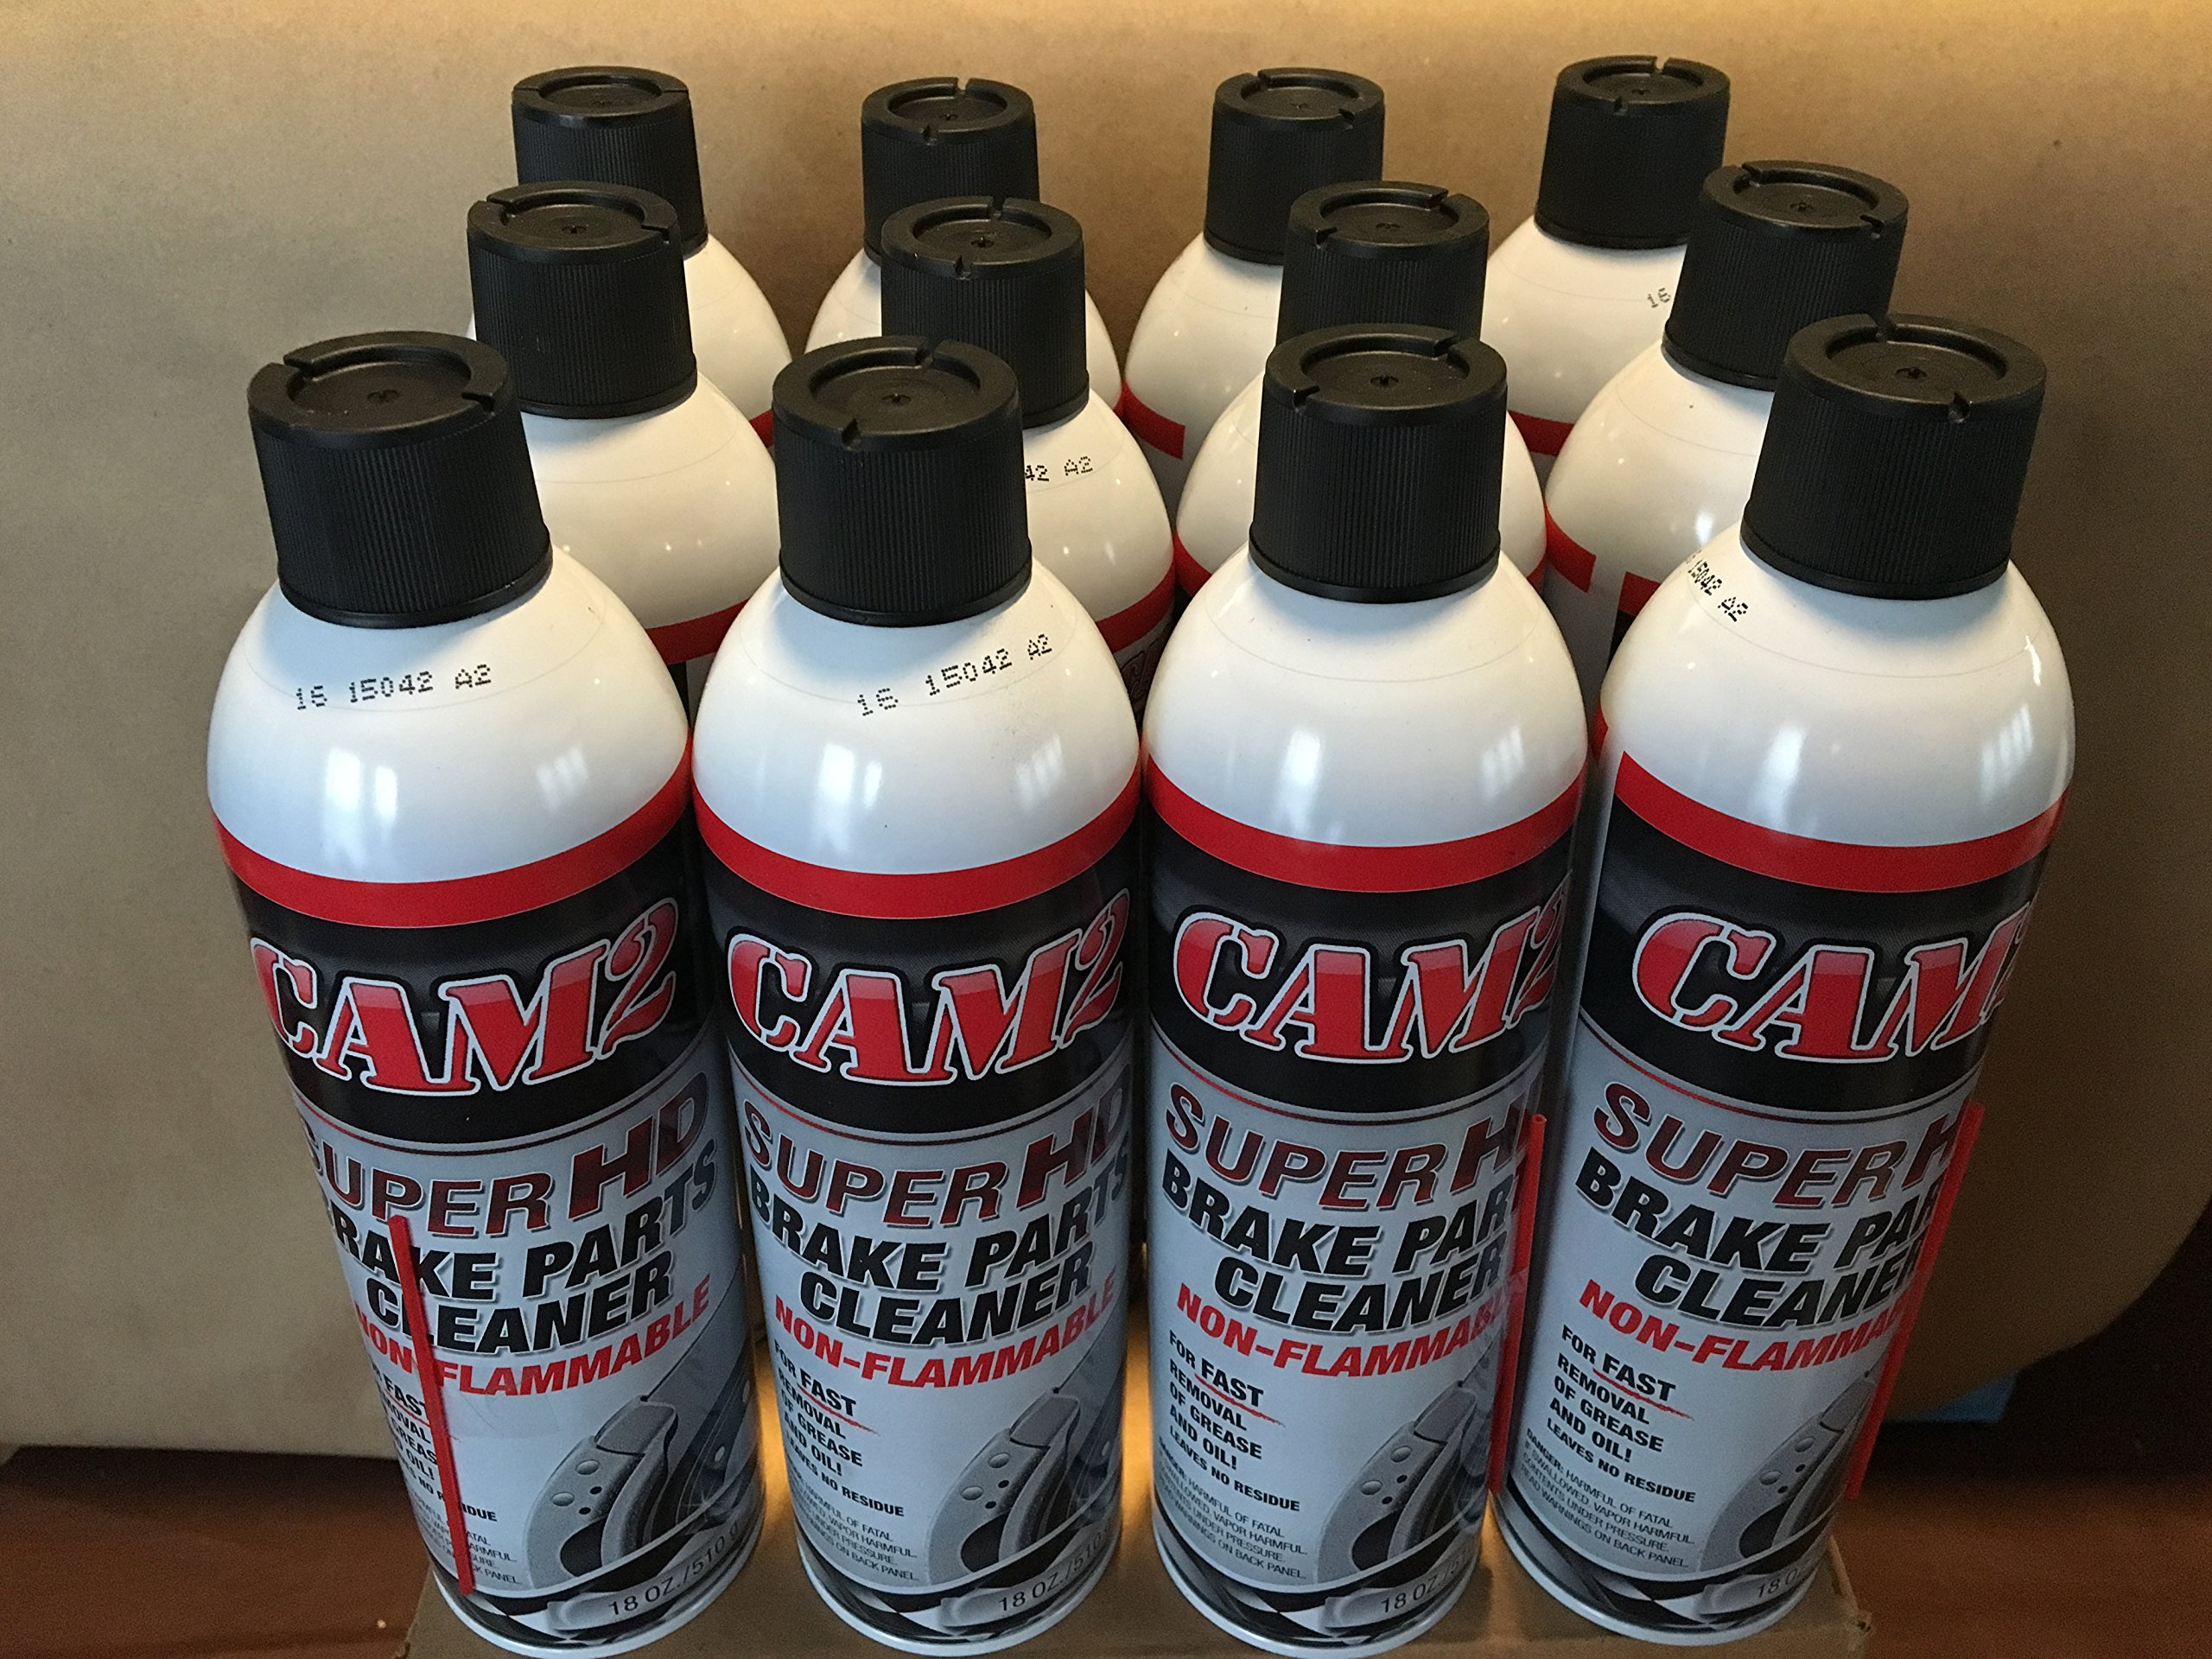 Cam2 18oz Non-Flammable Brake Parts Cleaner (case of 12)